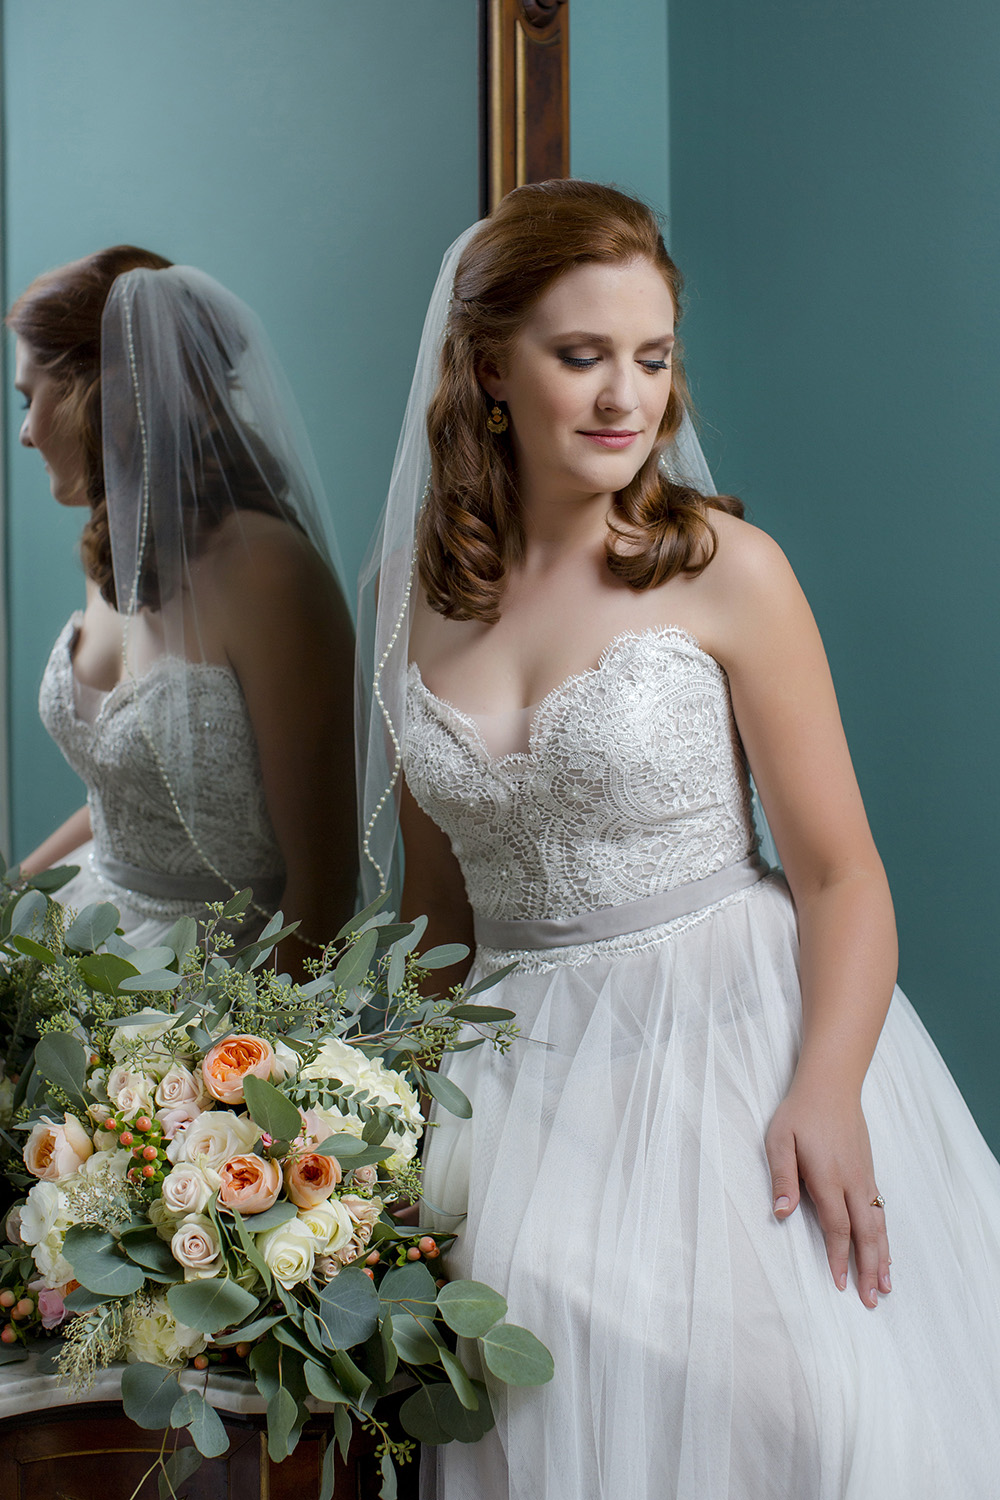 Stephanie-Bridals-0050.JPG